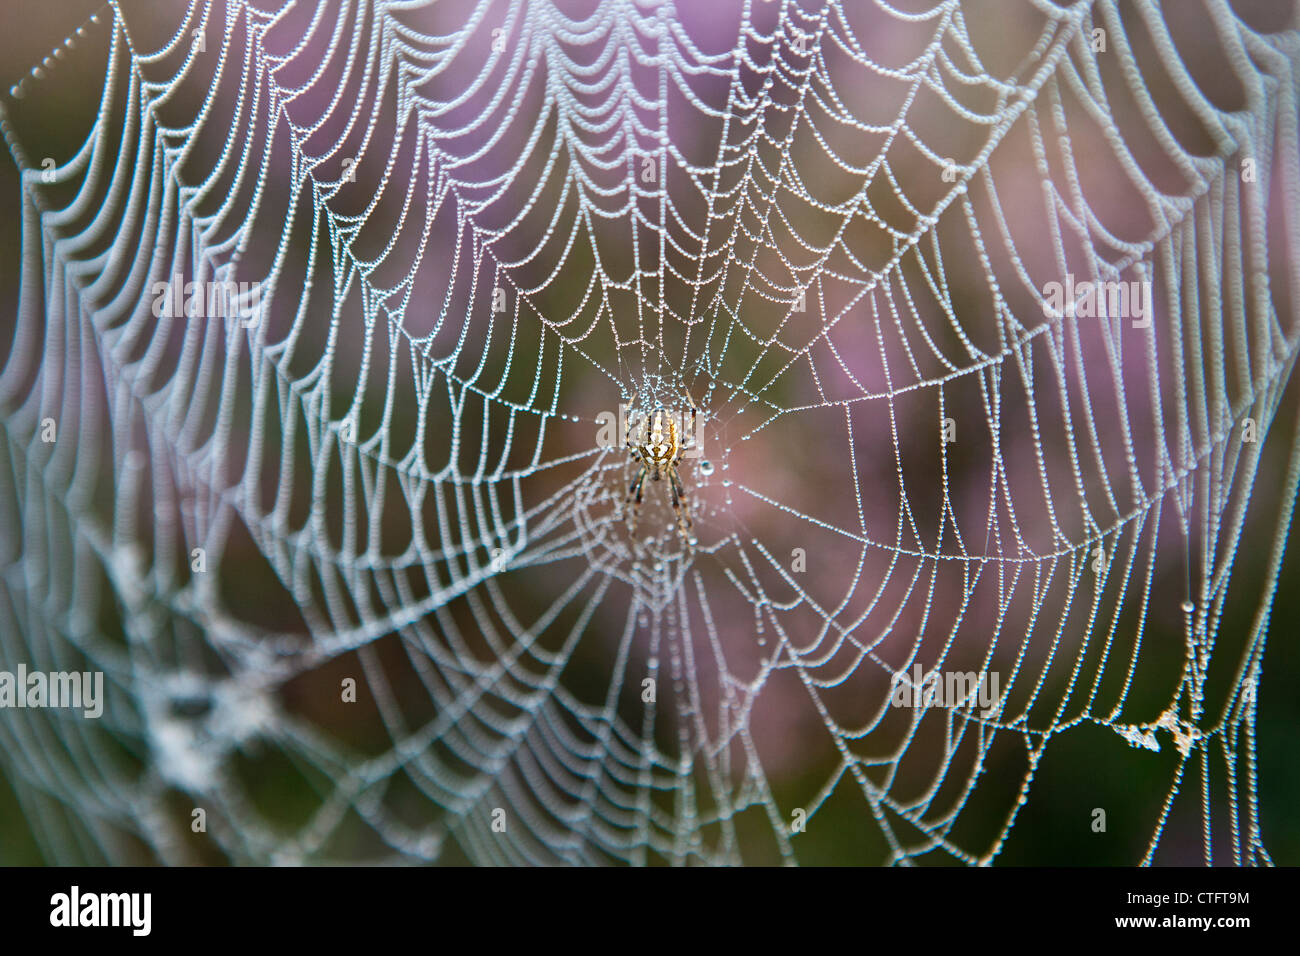 The Netherlands, Bussum, Early morning, flowering heath. Spider in web. - Stock Image